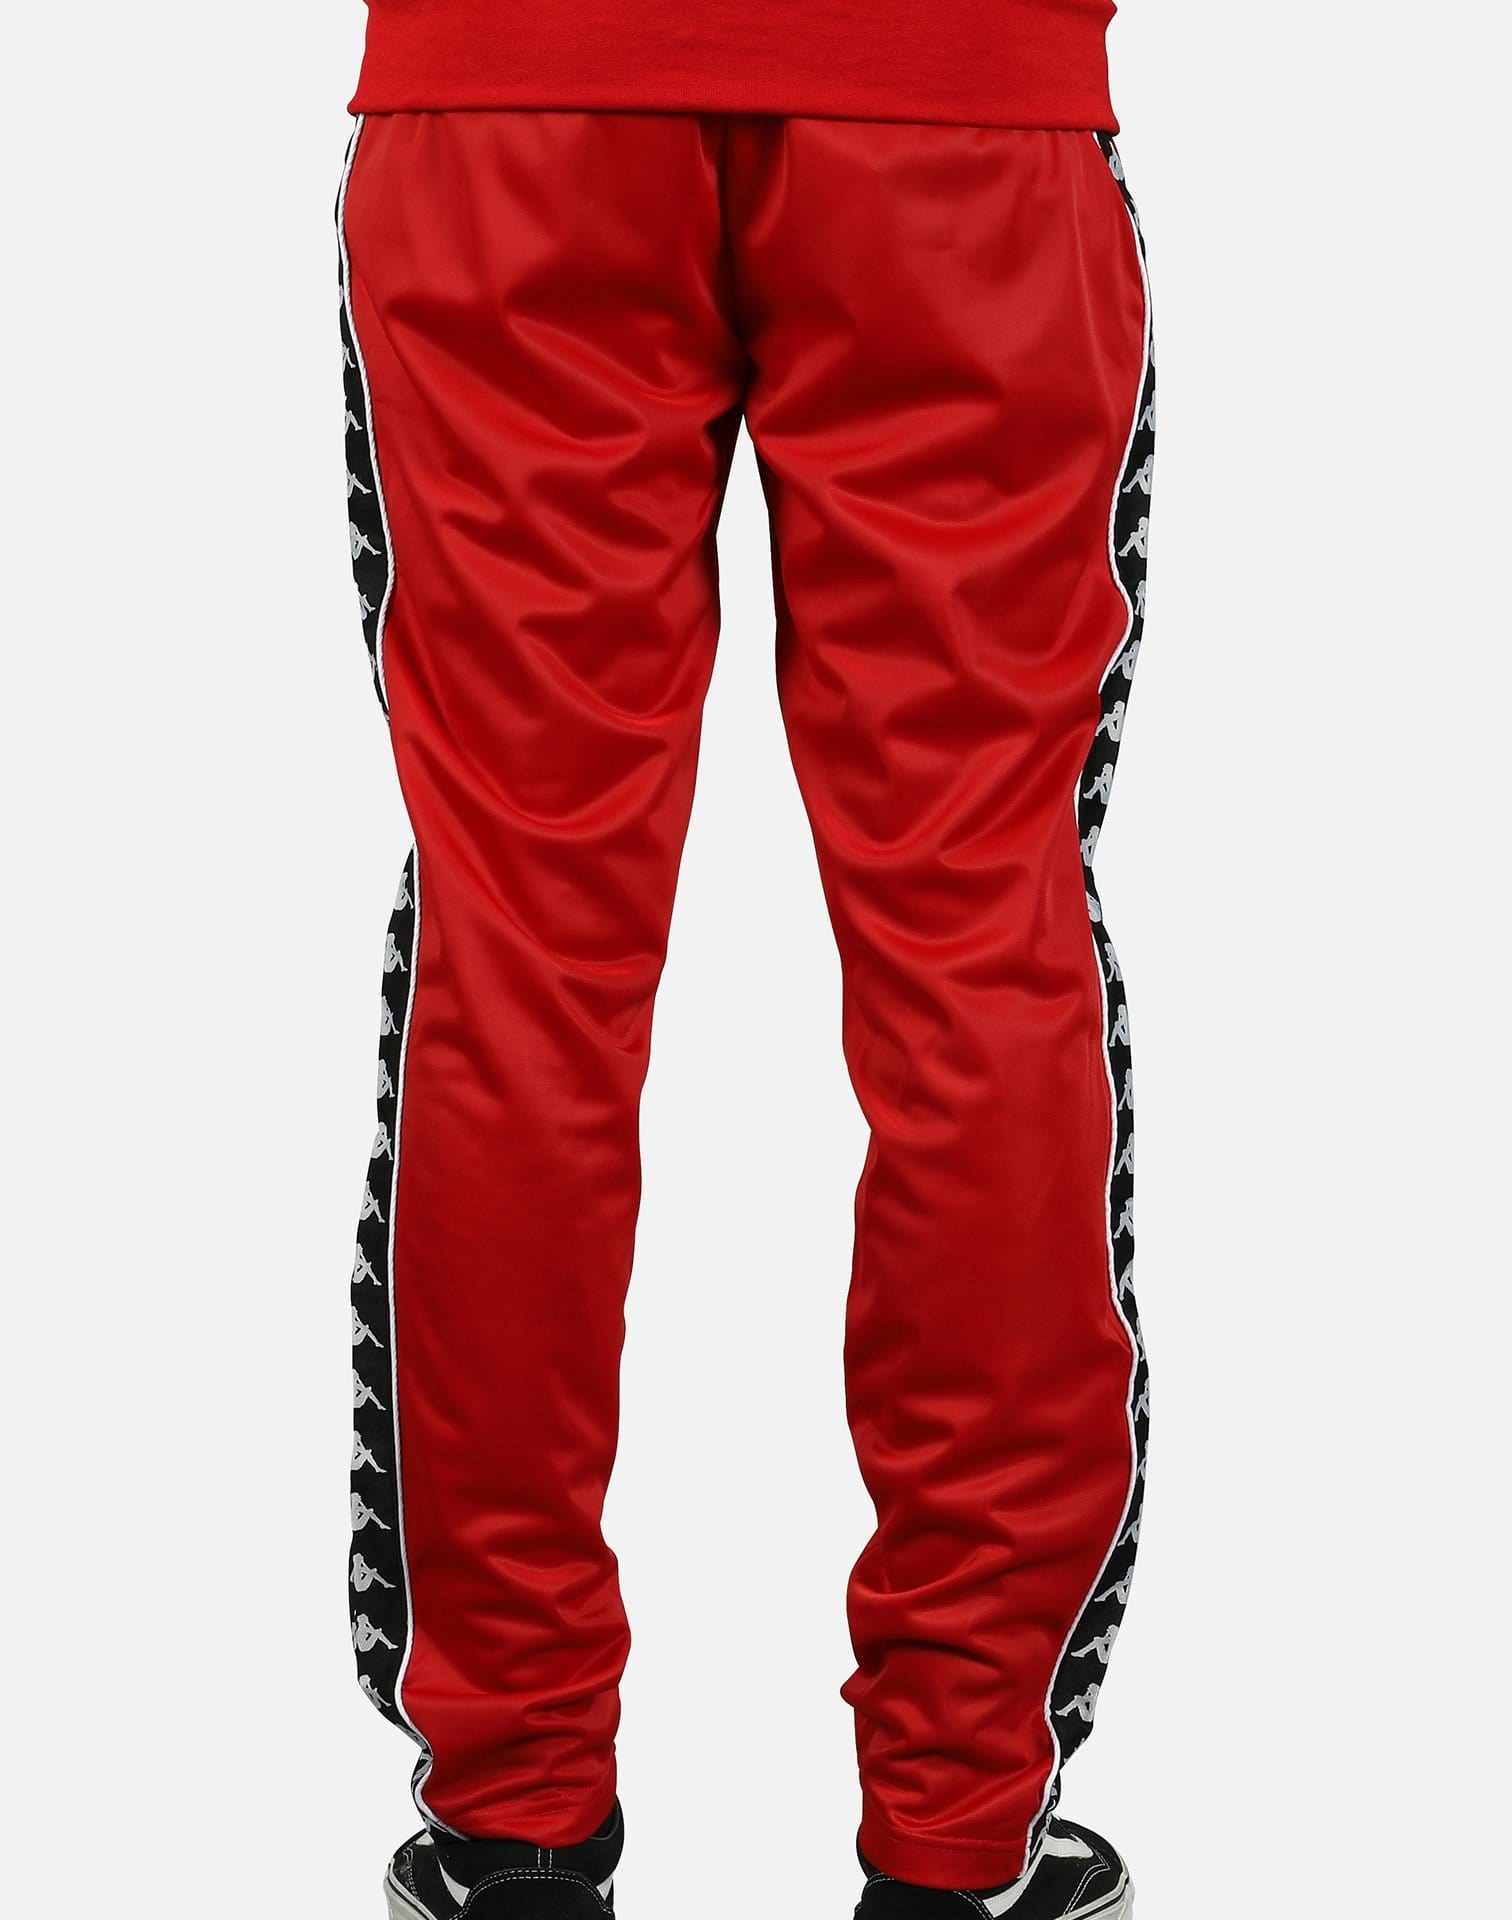 Kappa Men's 222 Banda Fairfax Track Pants